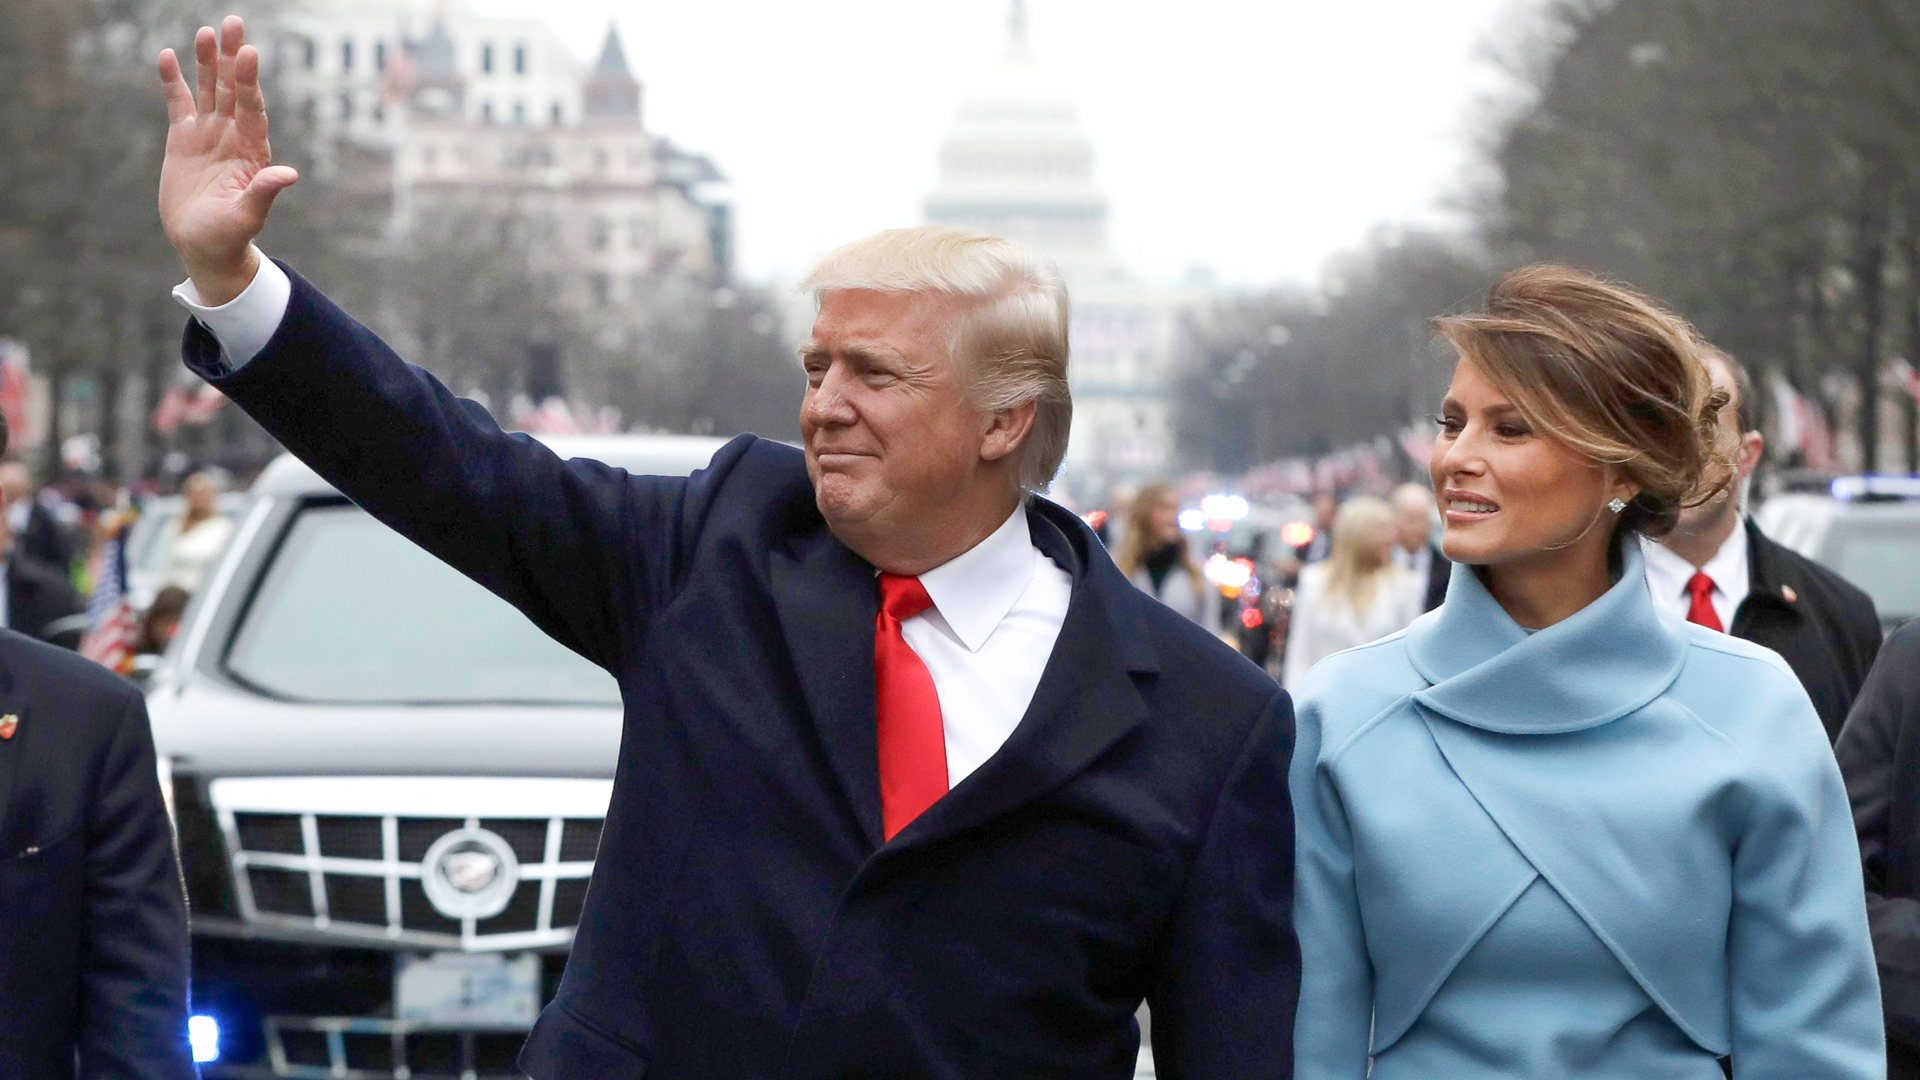 President Donald Trump waves with Melania Trump